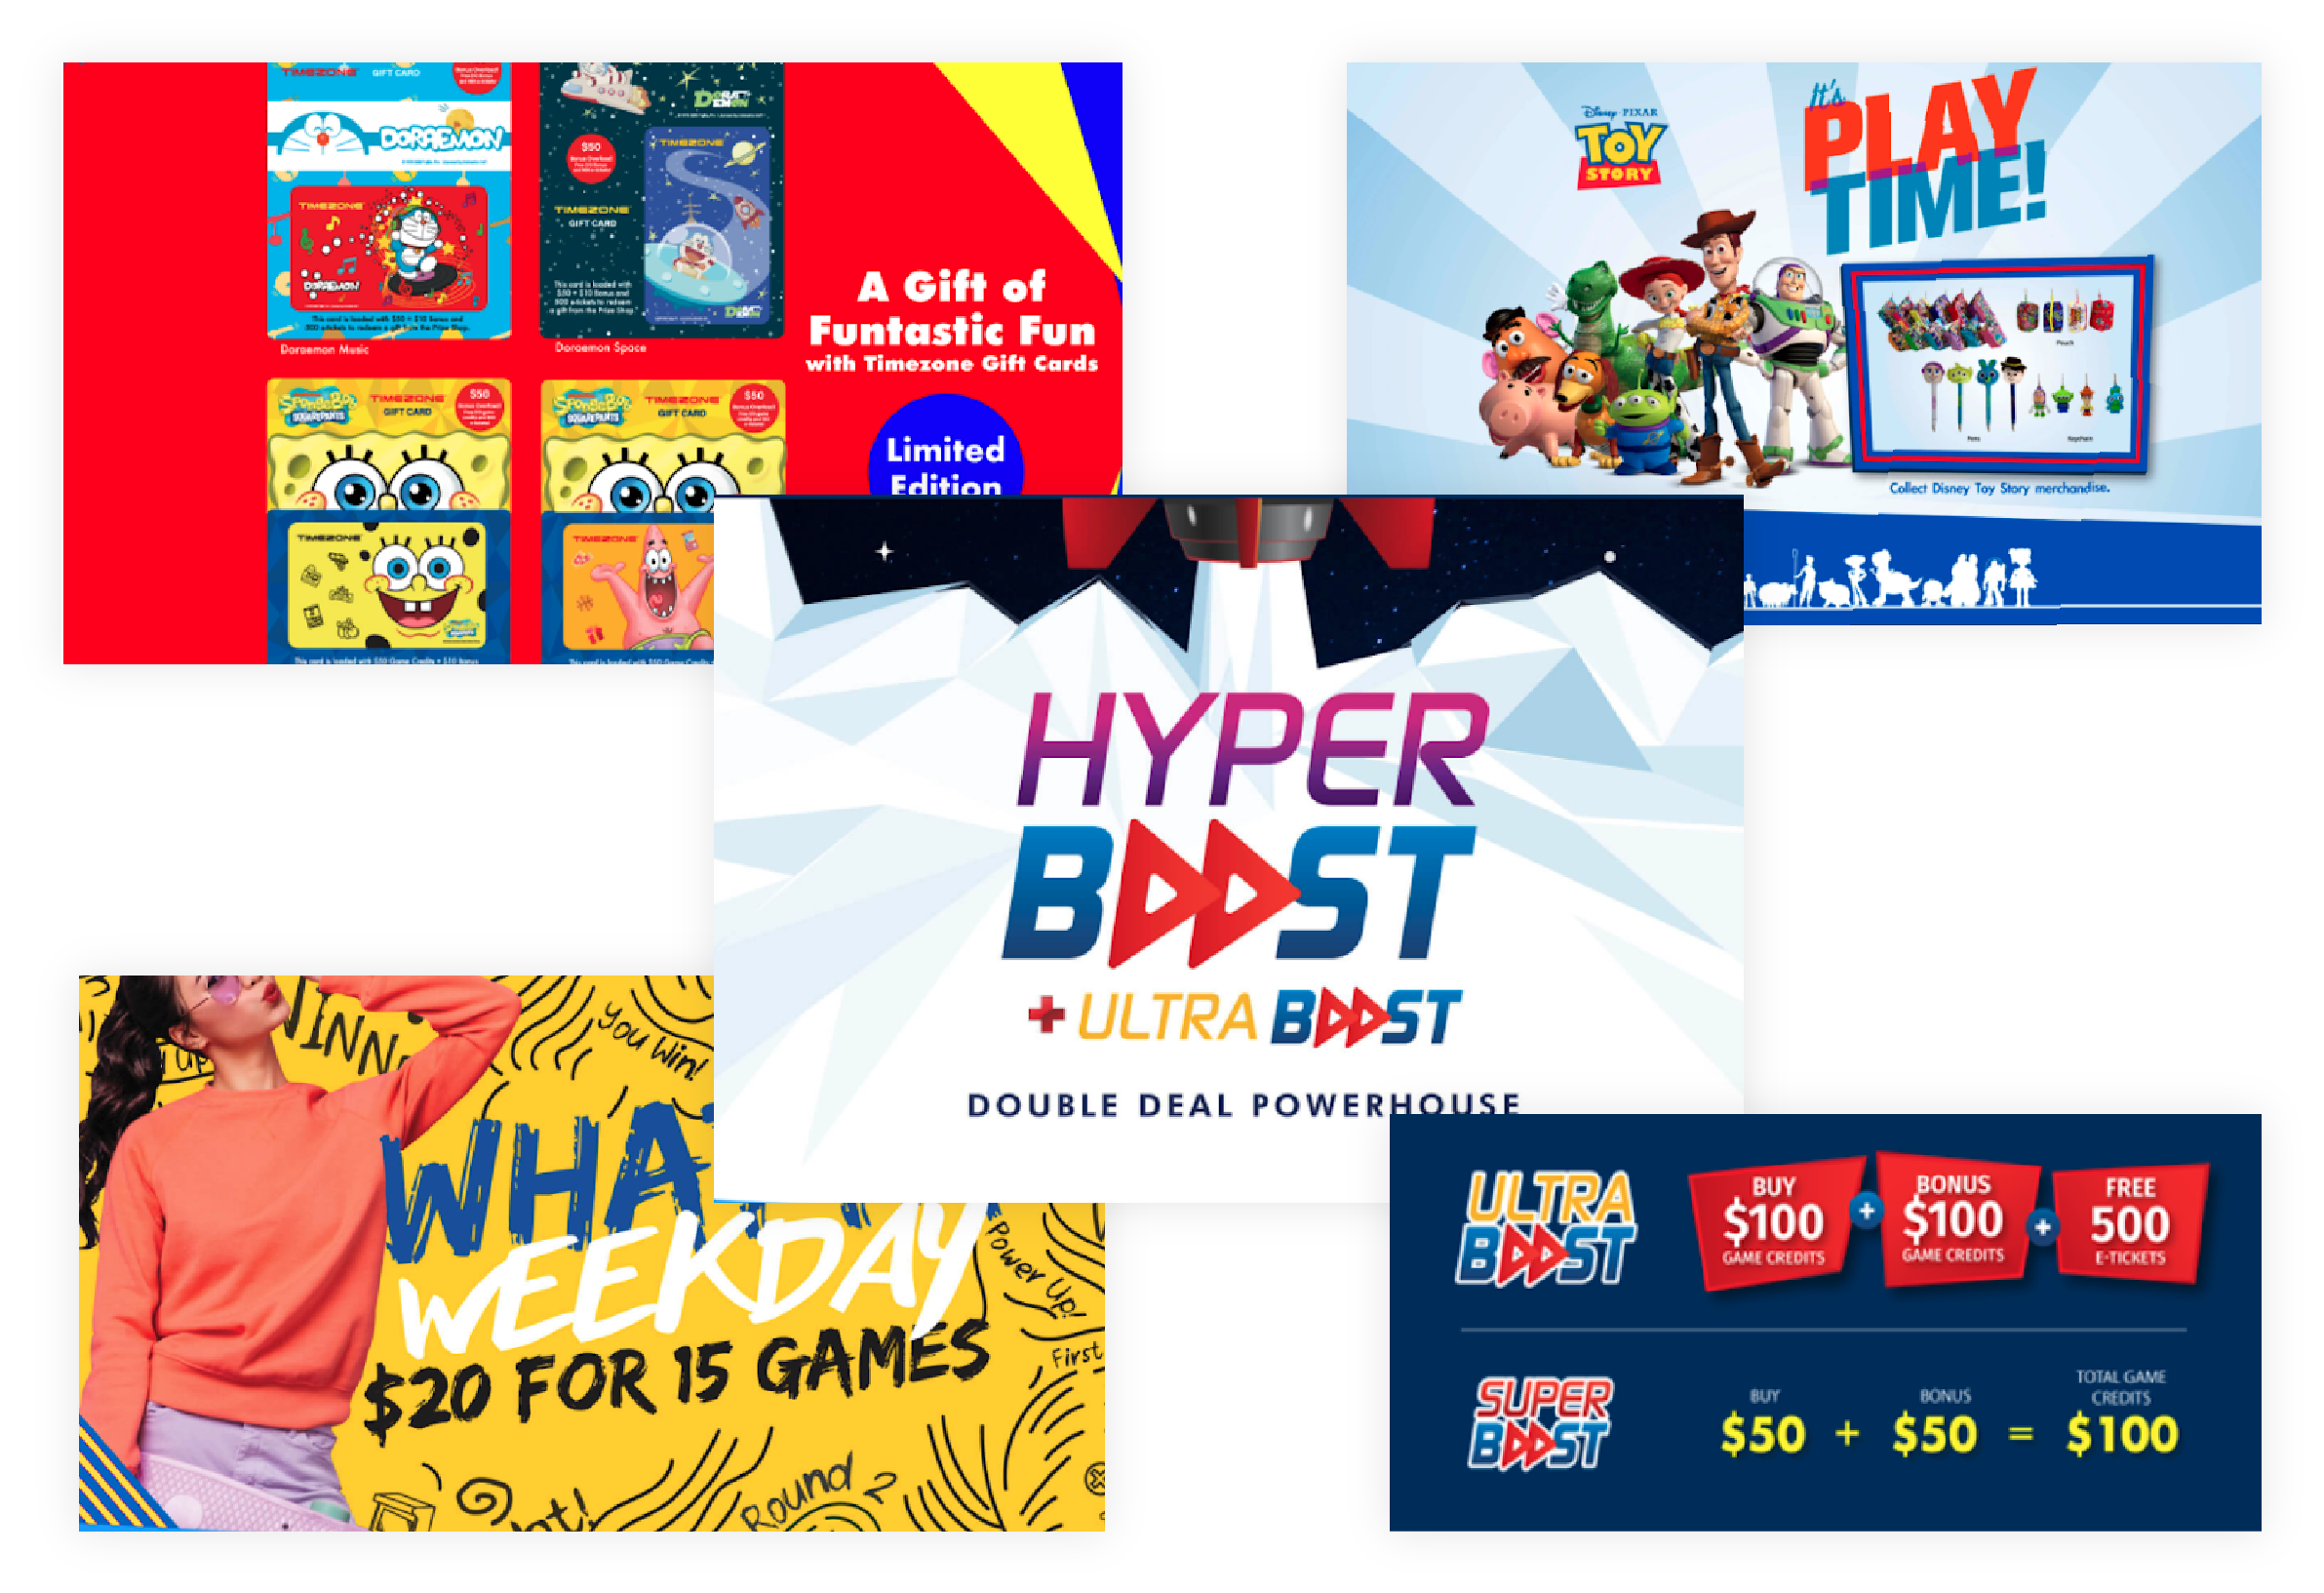 How an entertainment brand issues gift cards and game discounts on scale?